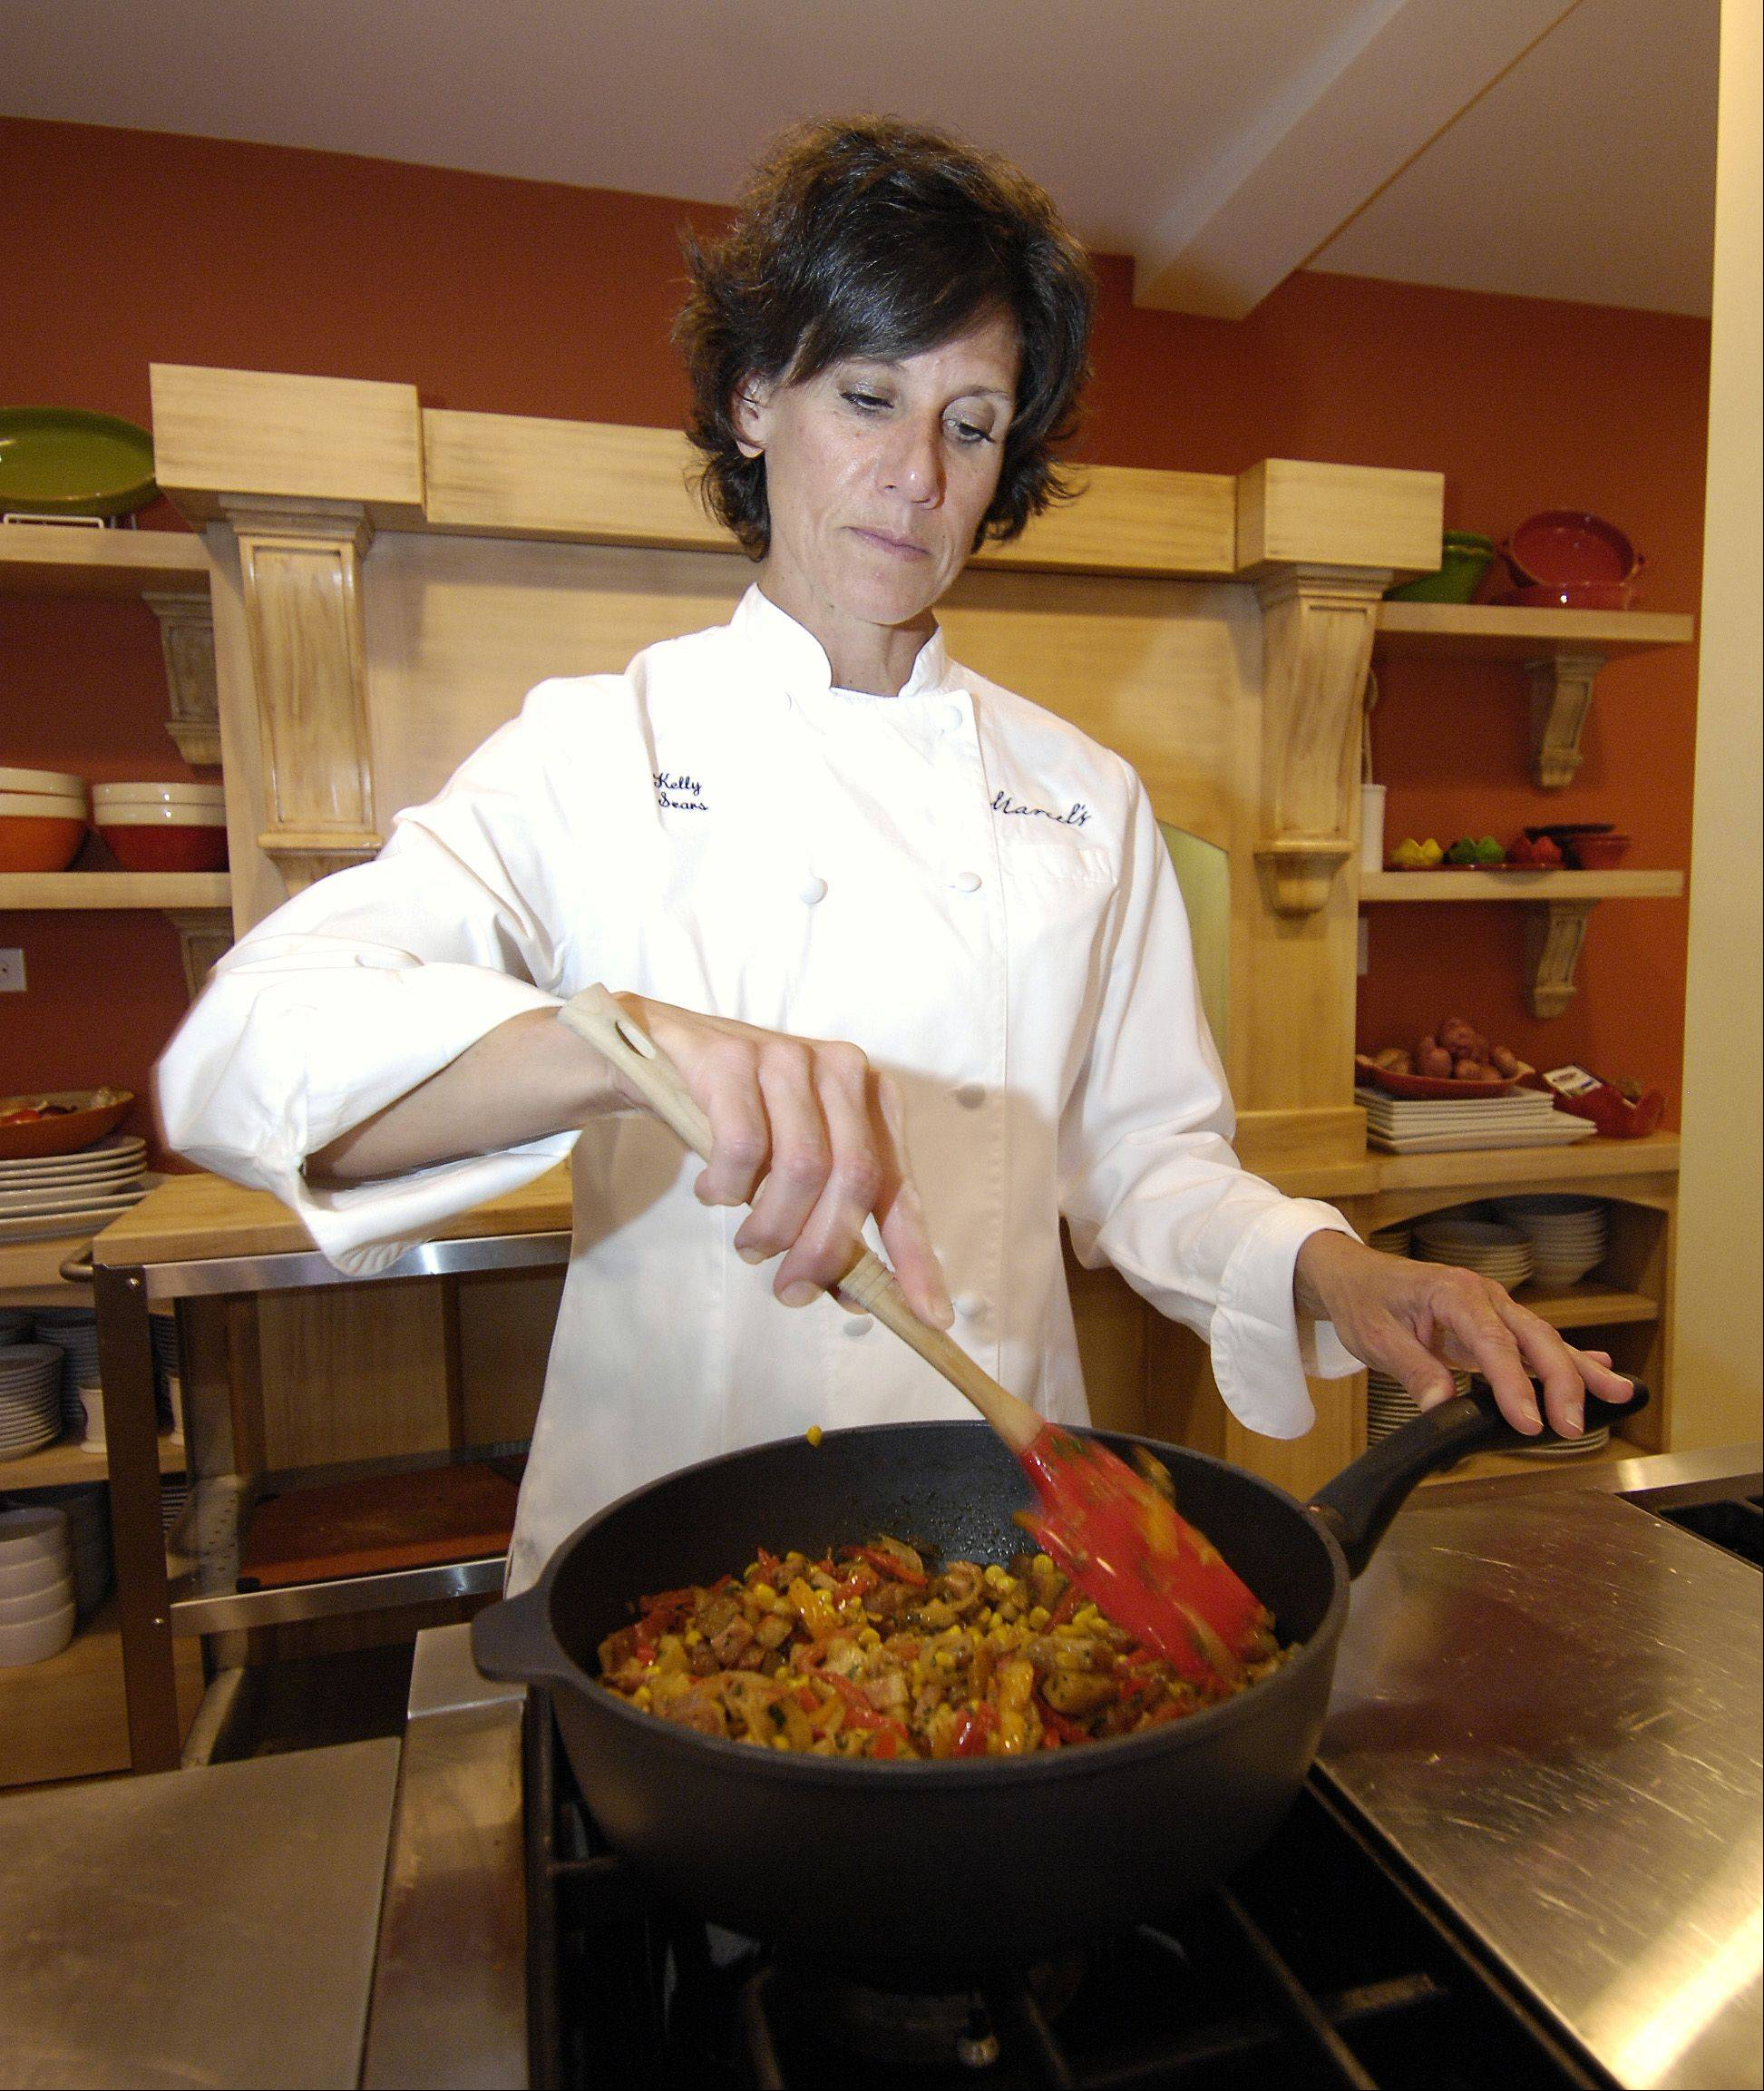 Chef Kelly Sears makes Corn Sauté with Pancetta, Potatoes and Peppers in the kitchen at Marcel's Culinary Experience in Glen Ellyn where she coordinates the store's cooking classes.